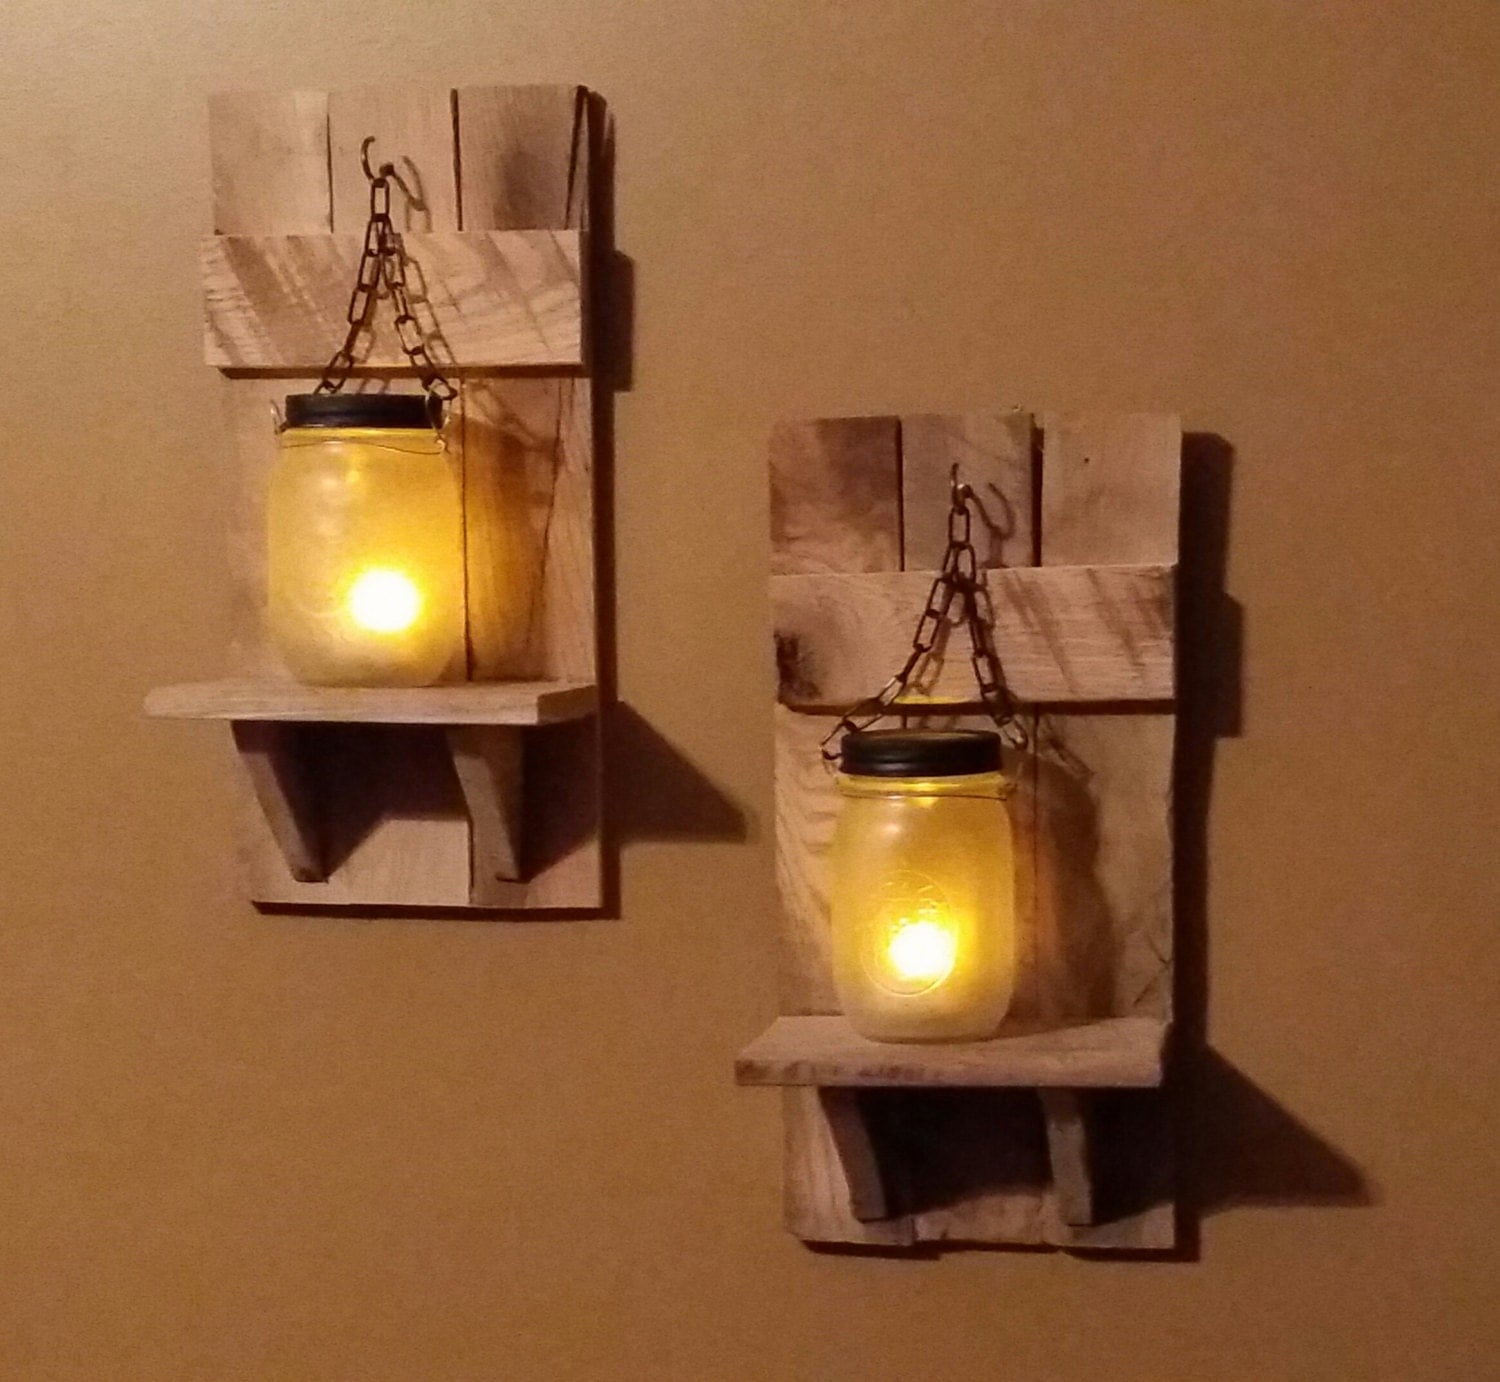 Country Wall Sconce Candle Holder : Rustic Mason Jar Candle Holder Country Decor sconces